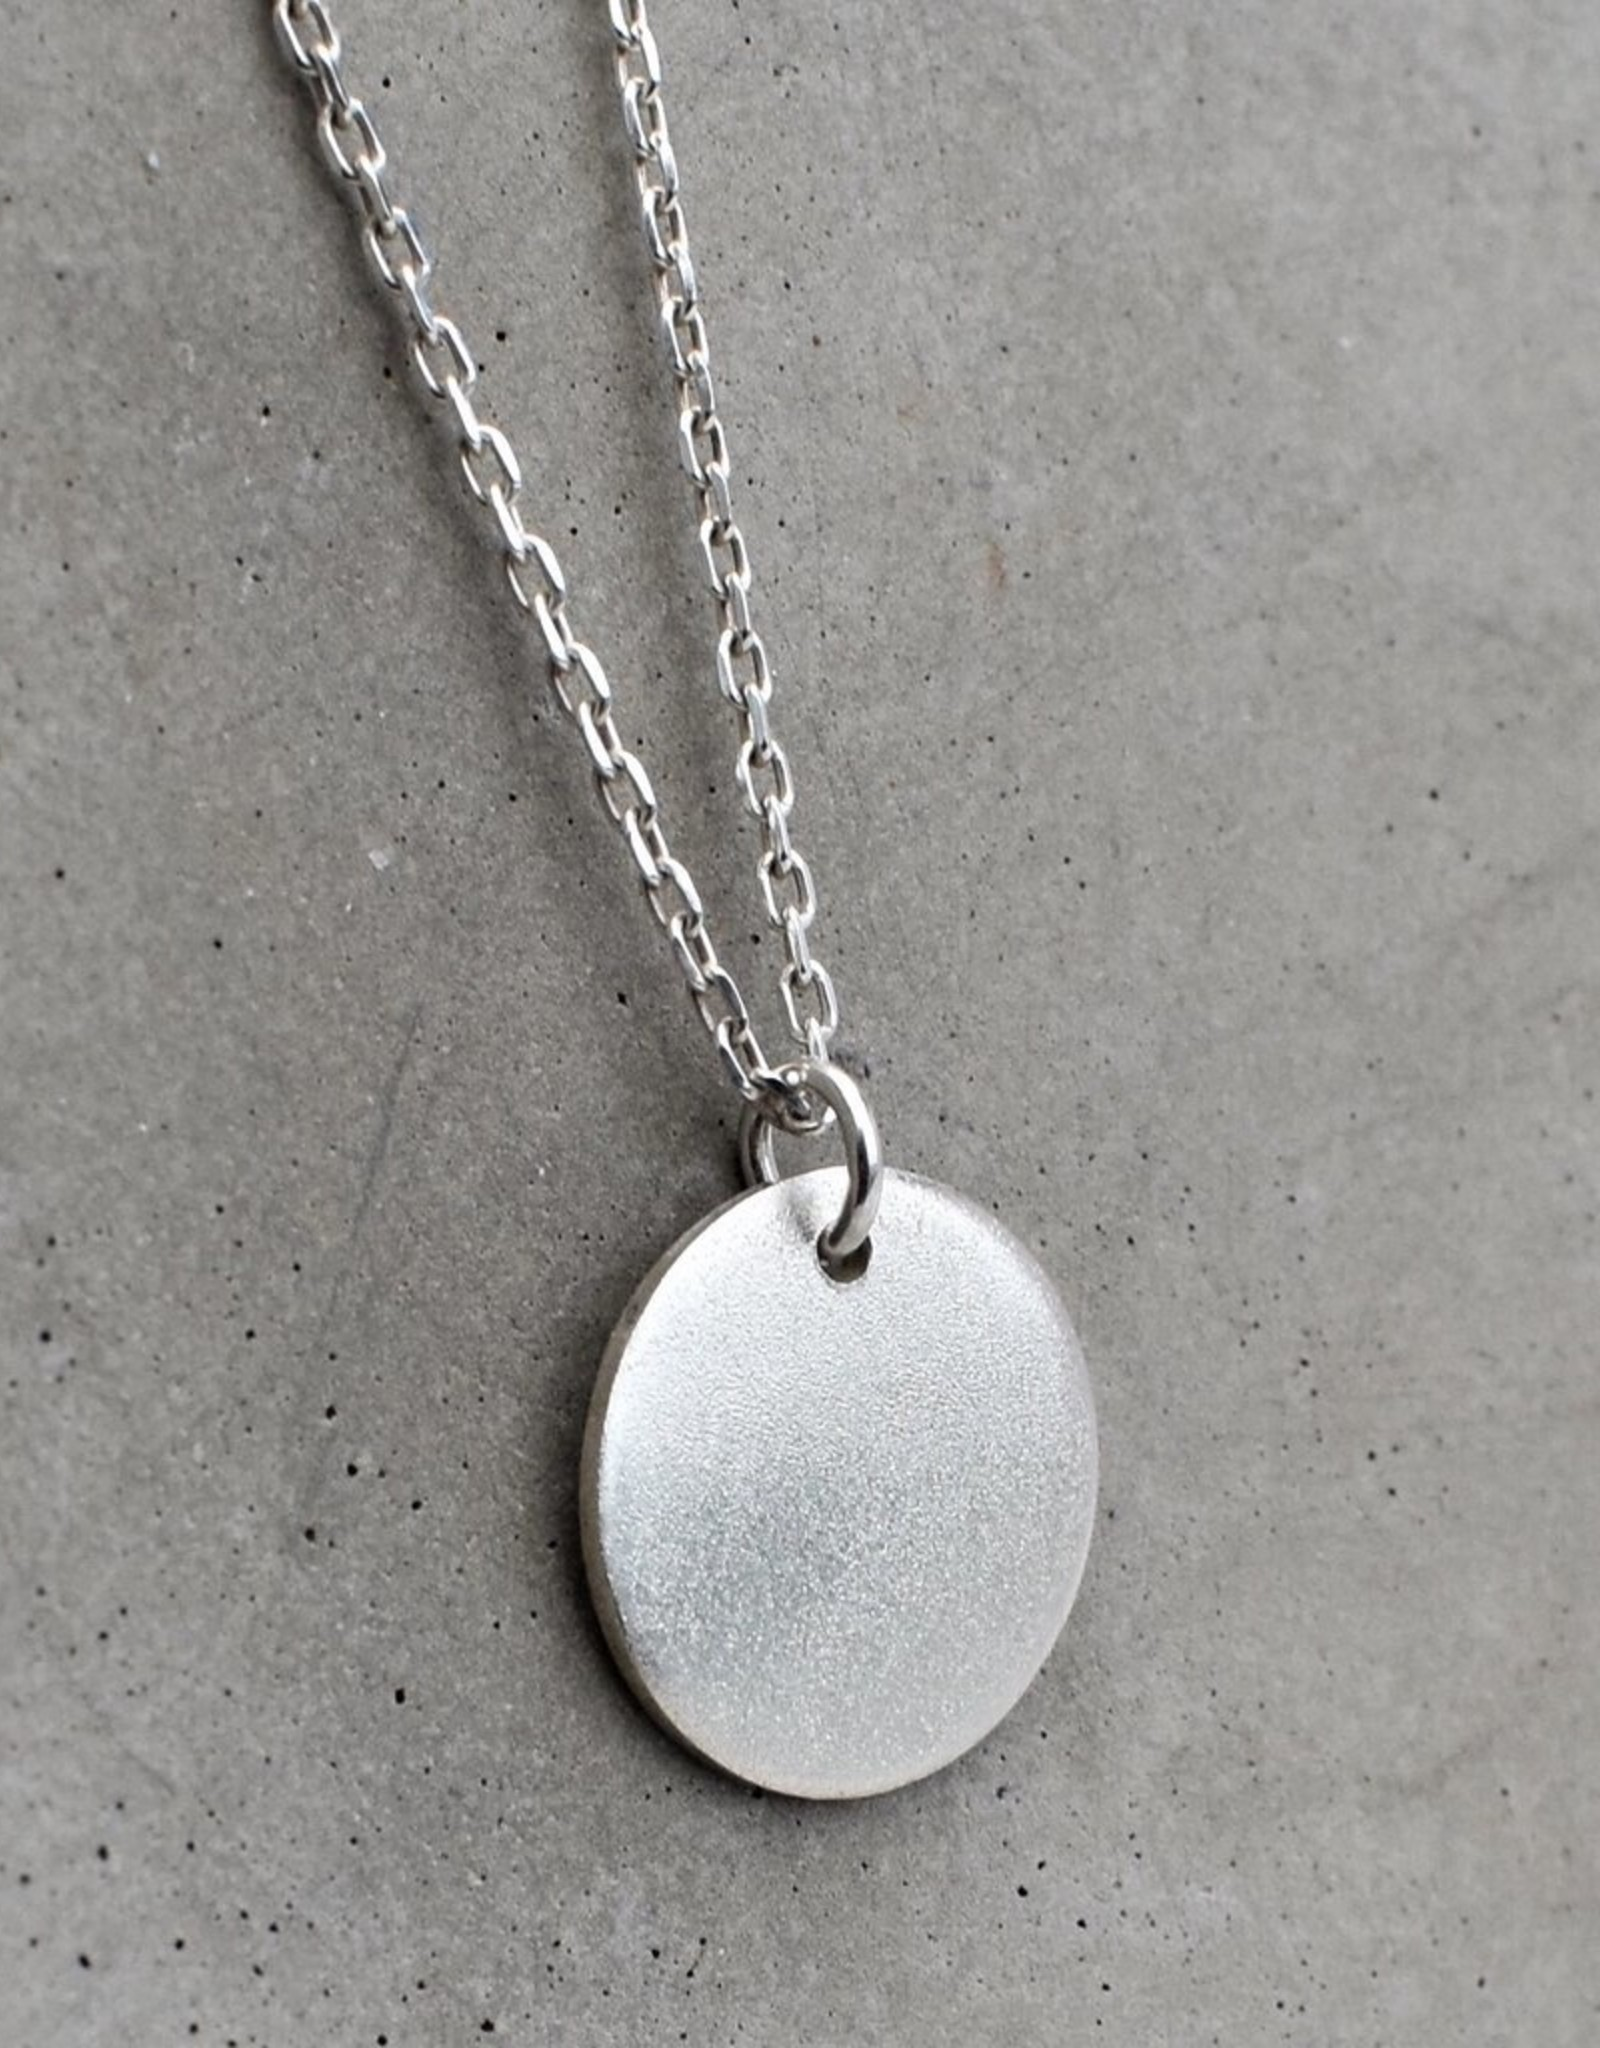 Taer Jewellery Taer Jewellery Round Pendant Silver Frost